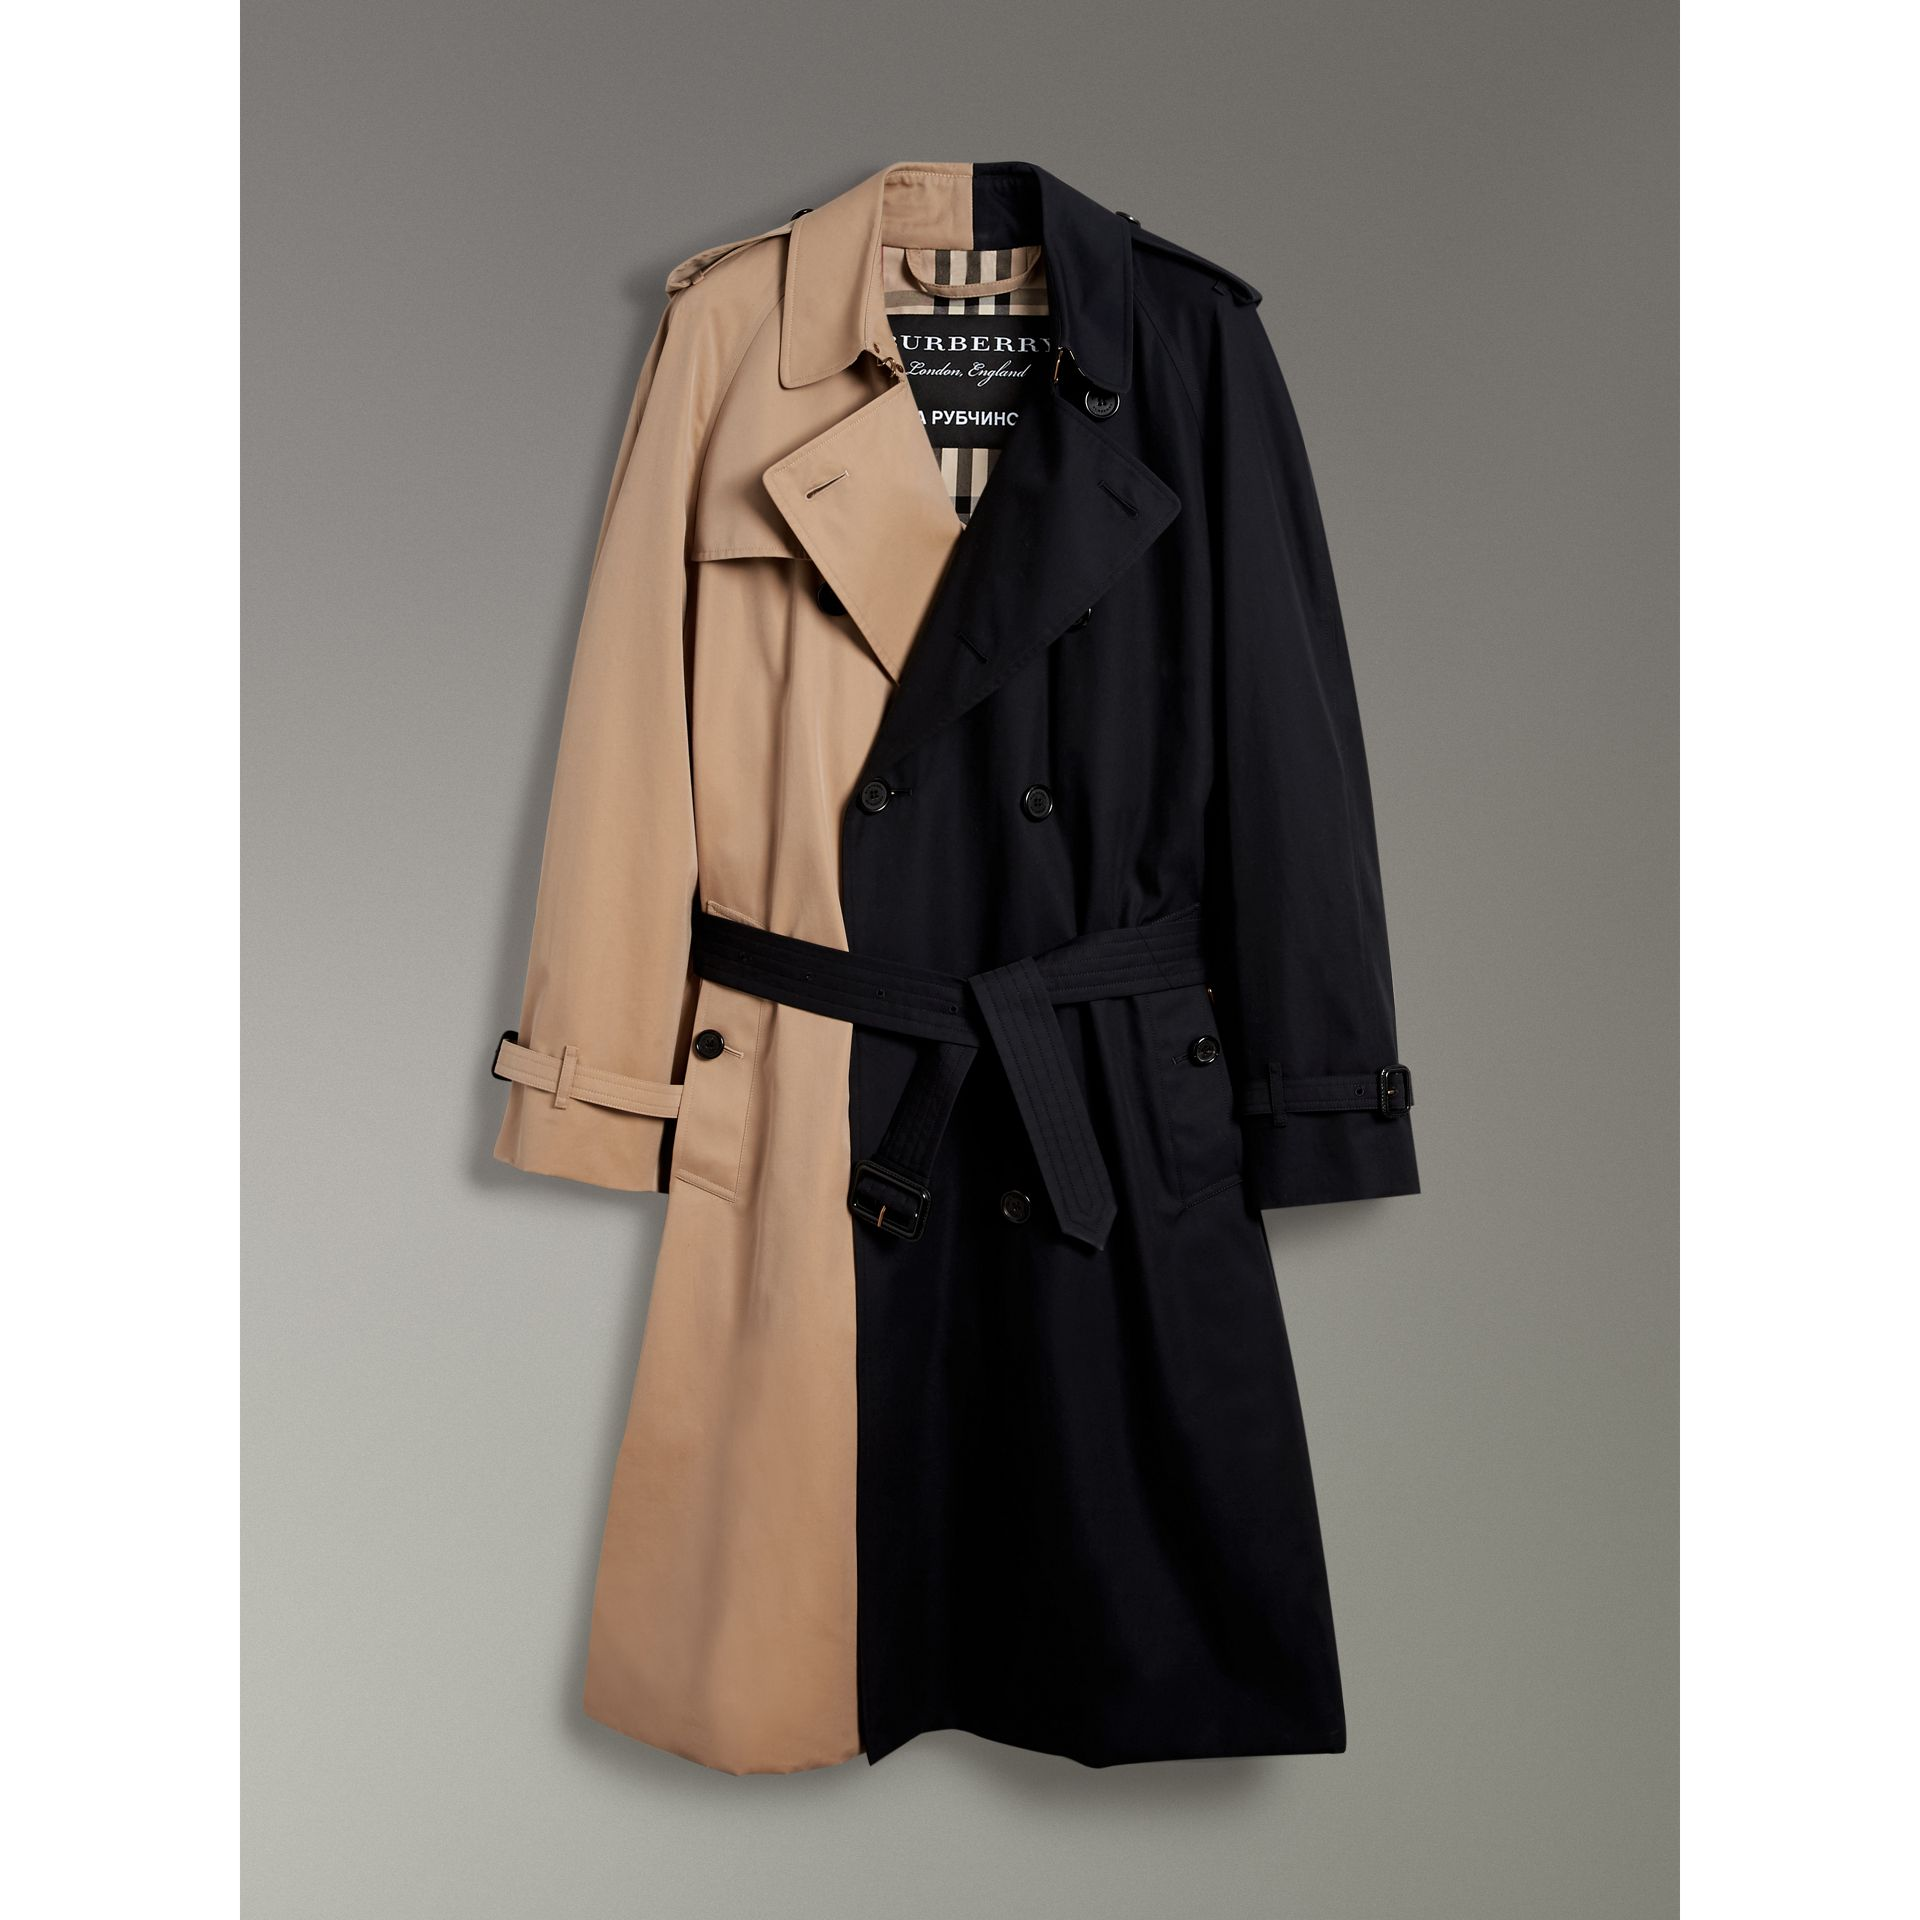 Gosha x Burberry Two-tone Trench Coat in Honey - Men | Burberry United States - gallery image 4